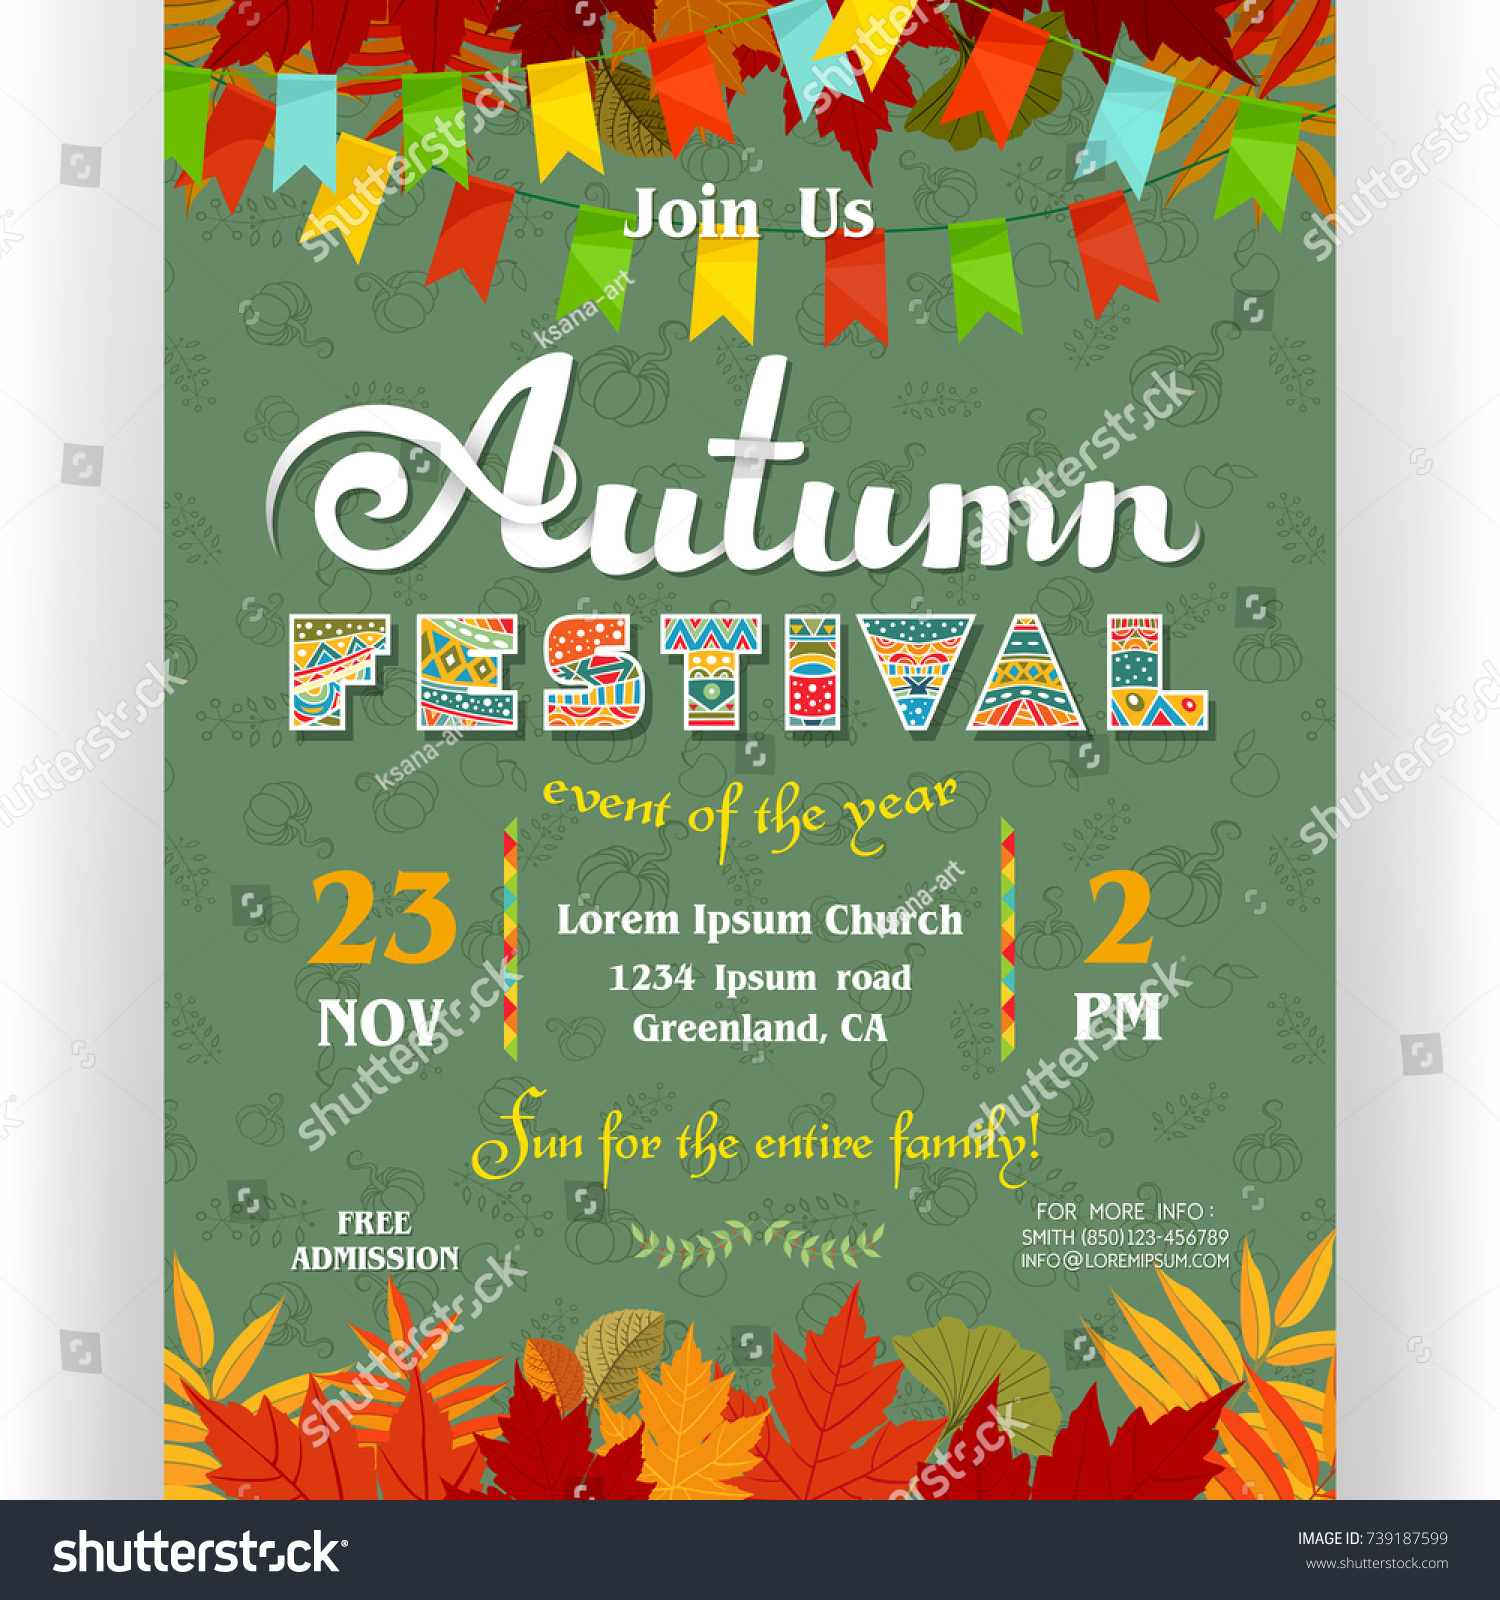 Autumn festival poster template text customized stock vector autumn festival poster template text customized for invitation for celebration ornate letters colorful pronofoot35fo Gallery